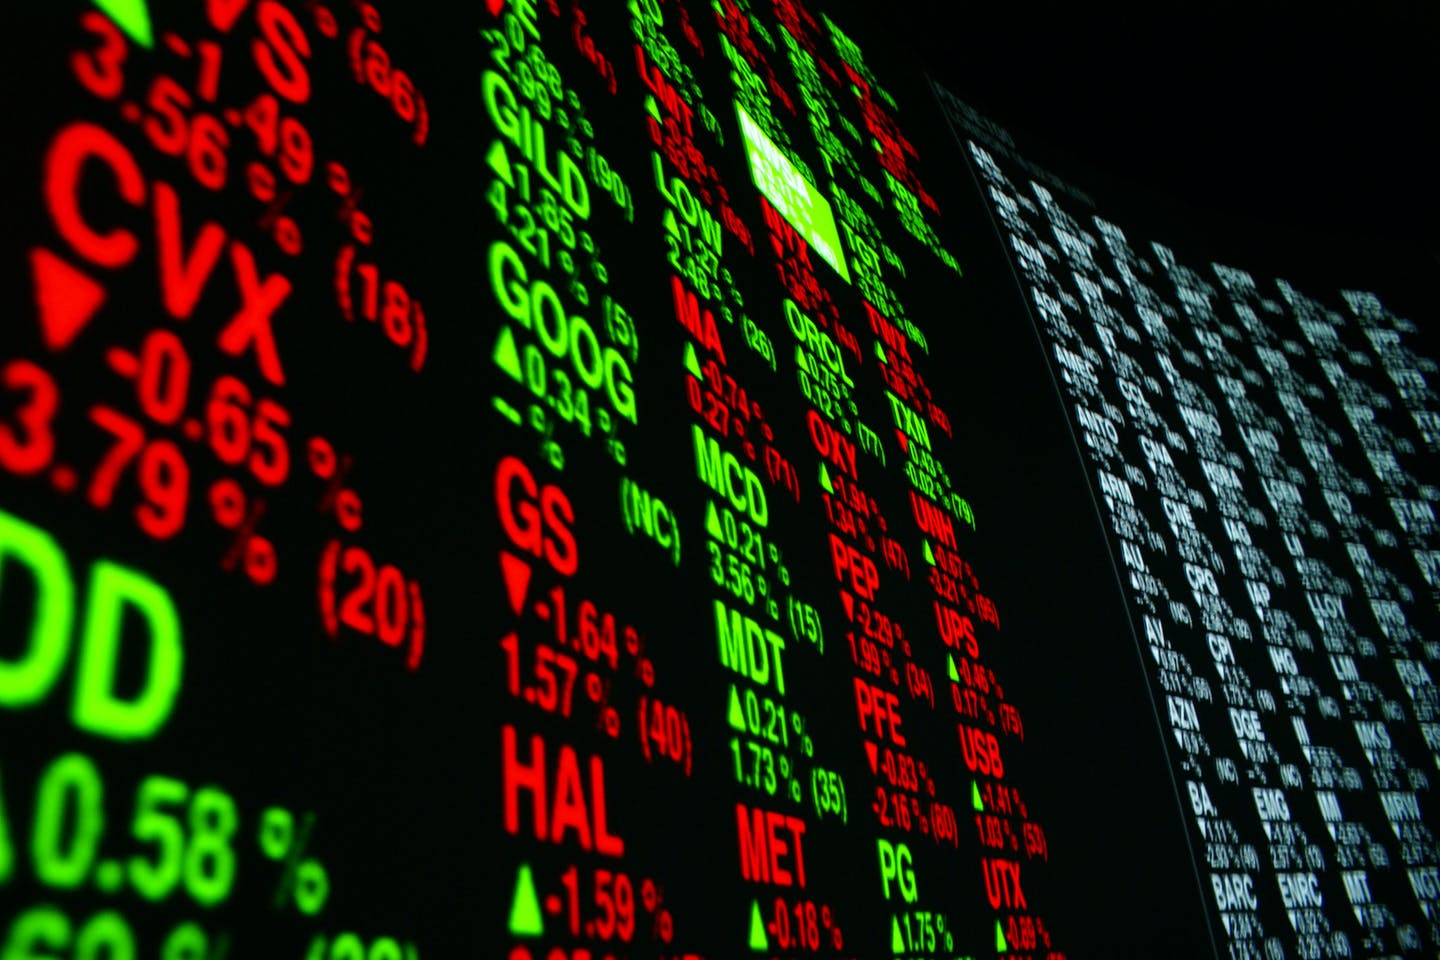 stock market prices red and green